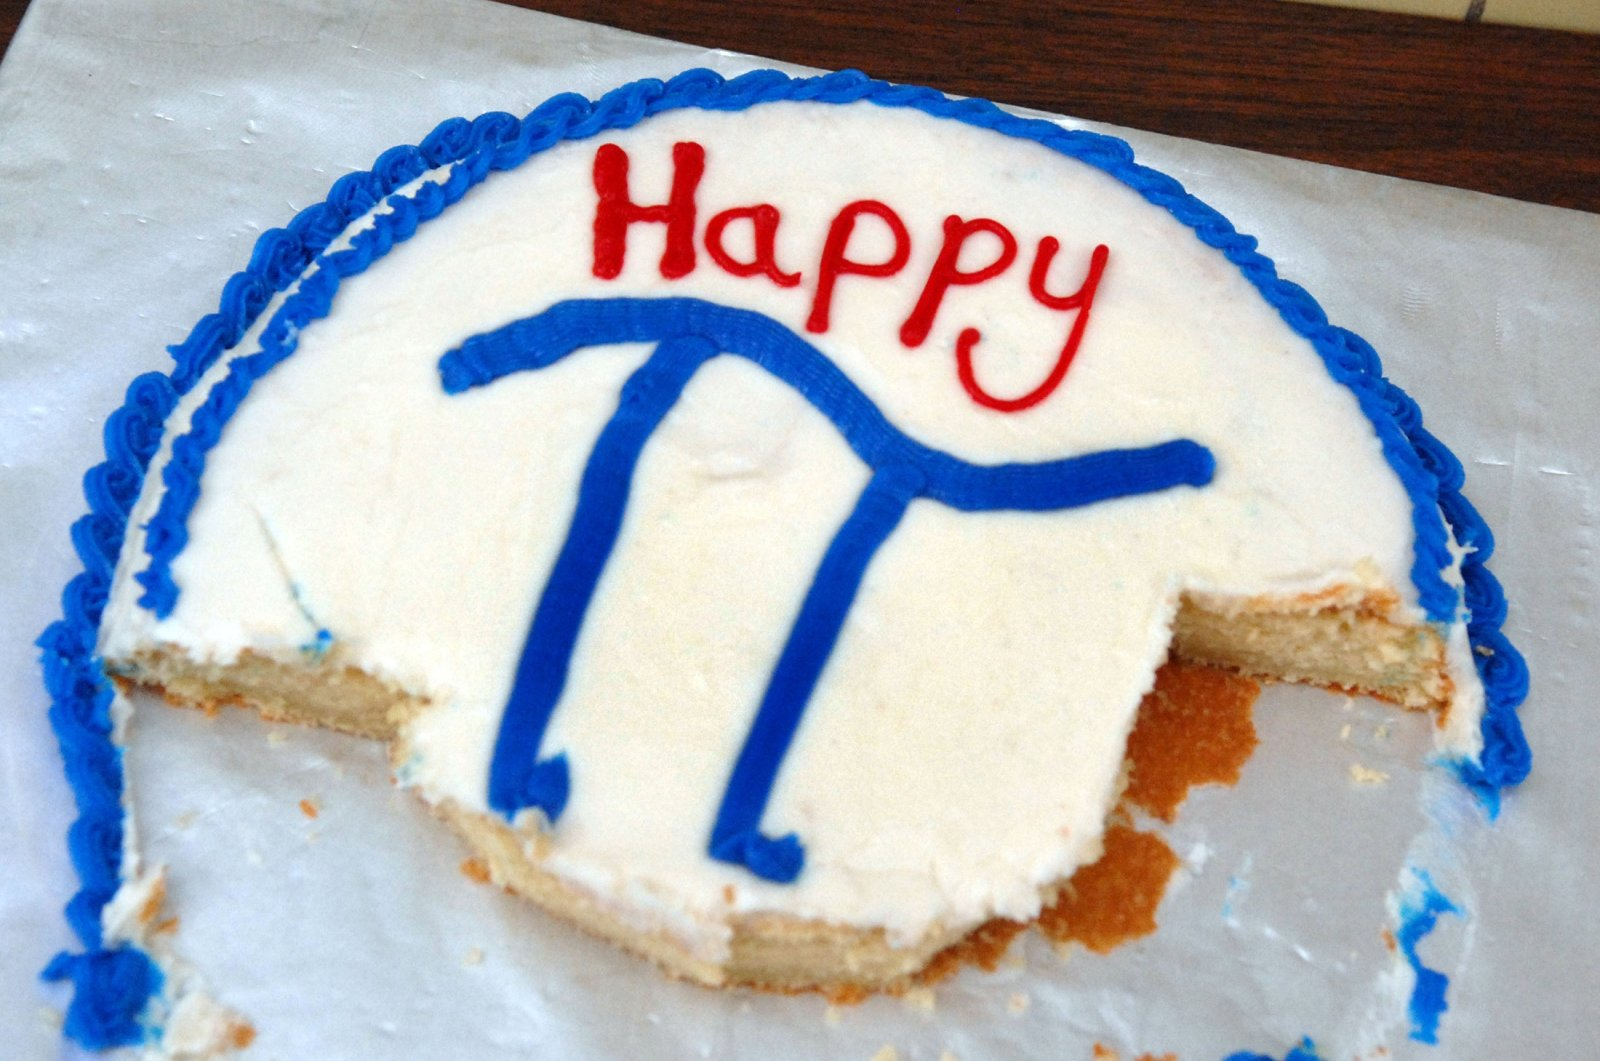 The symbol of the mathematical constant pi can be seen on the remnants of a cake. (Gettty Images)